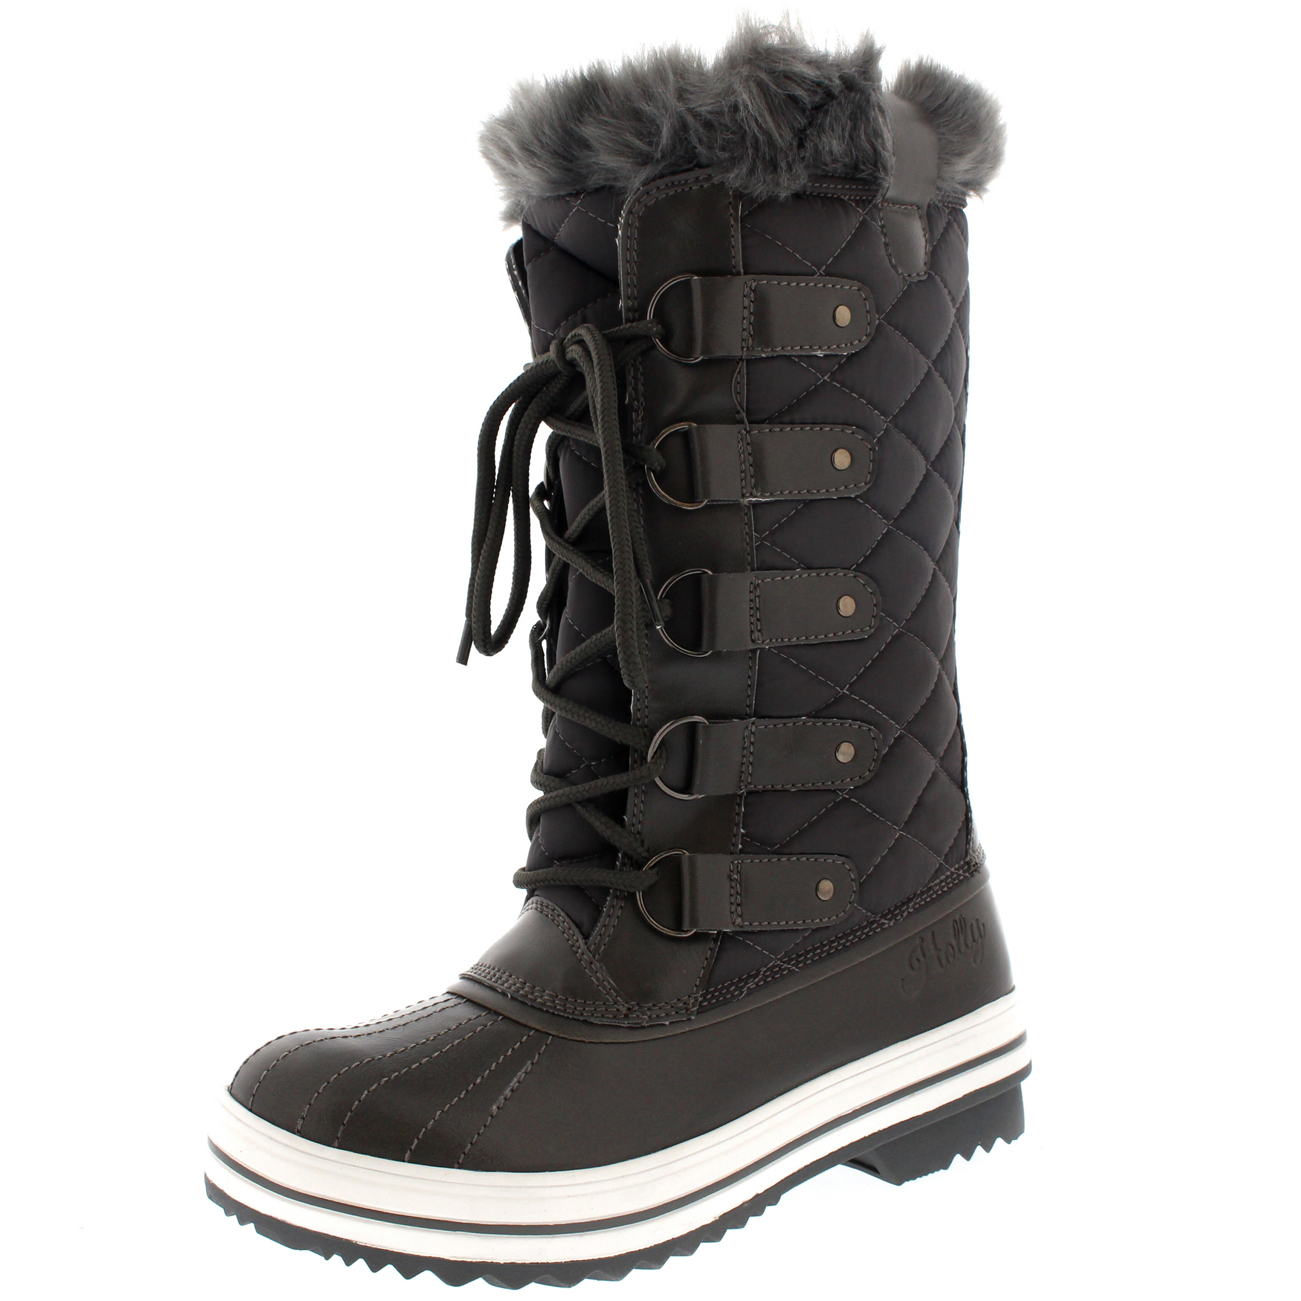 Womans Snow Boots xFEiNYuh